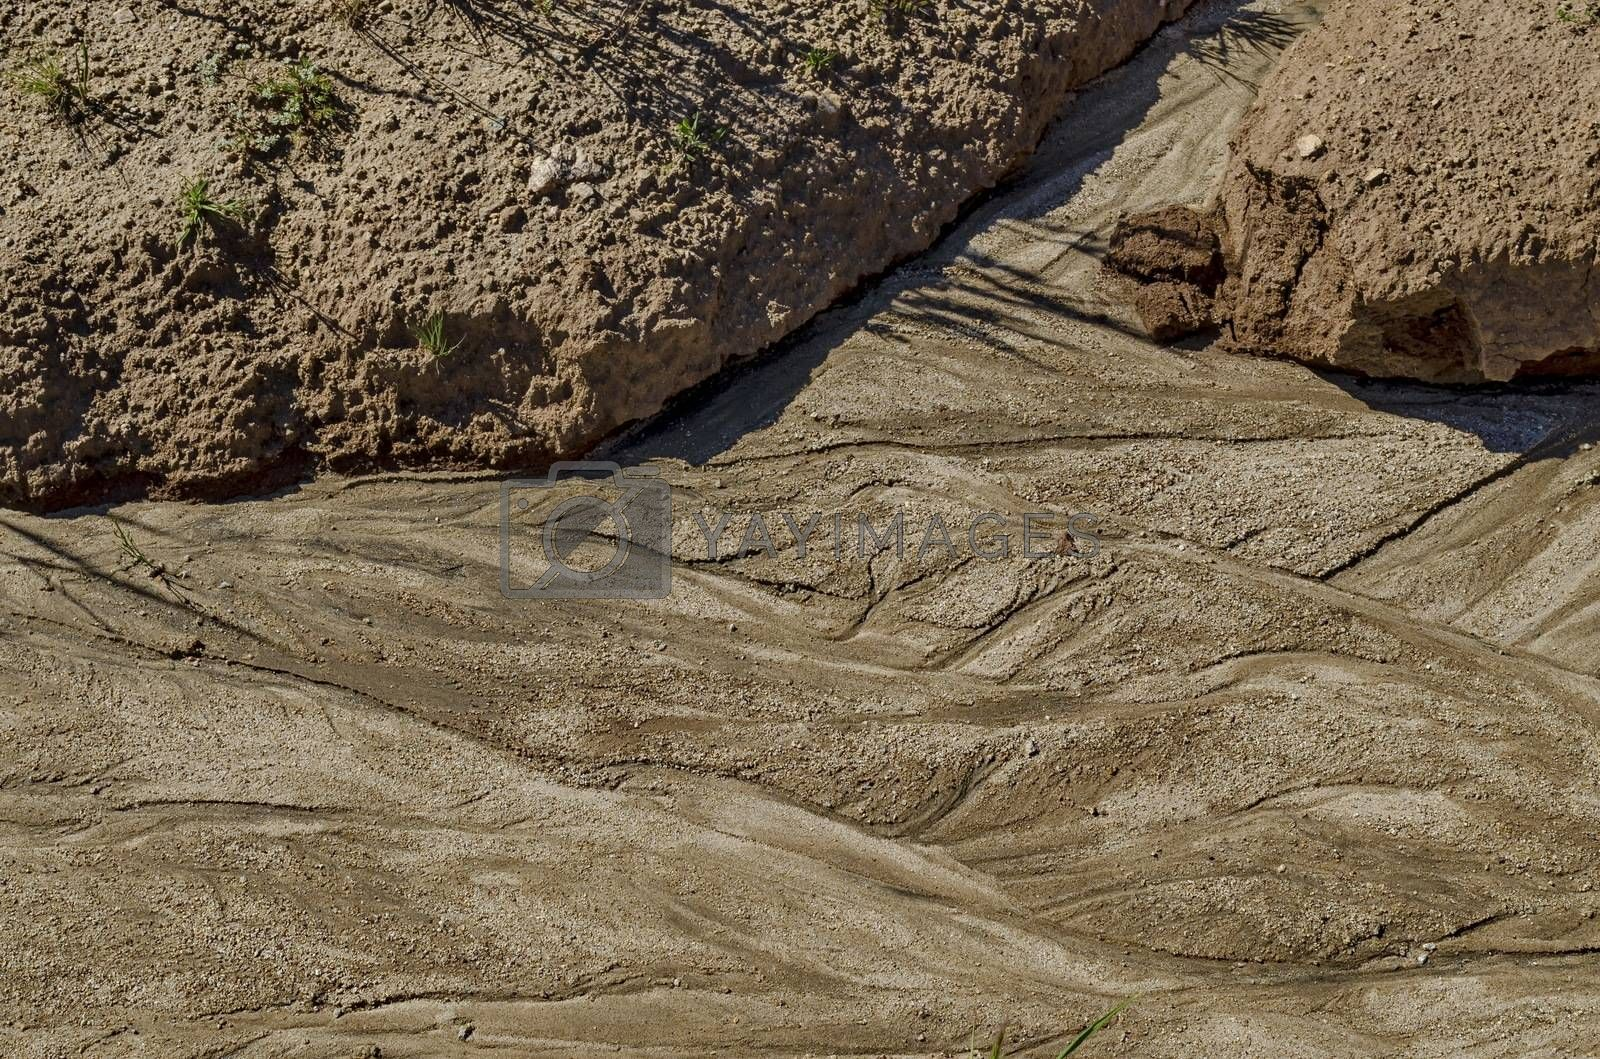 Dry land with drawing after flood rain in the field, Plana mountain, Bulgaria